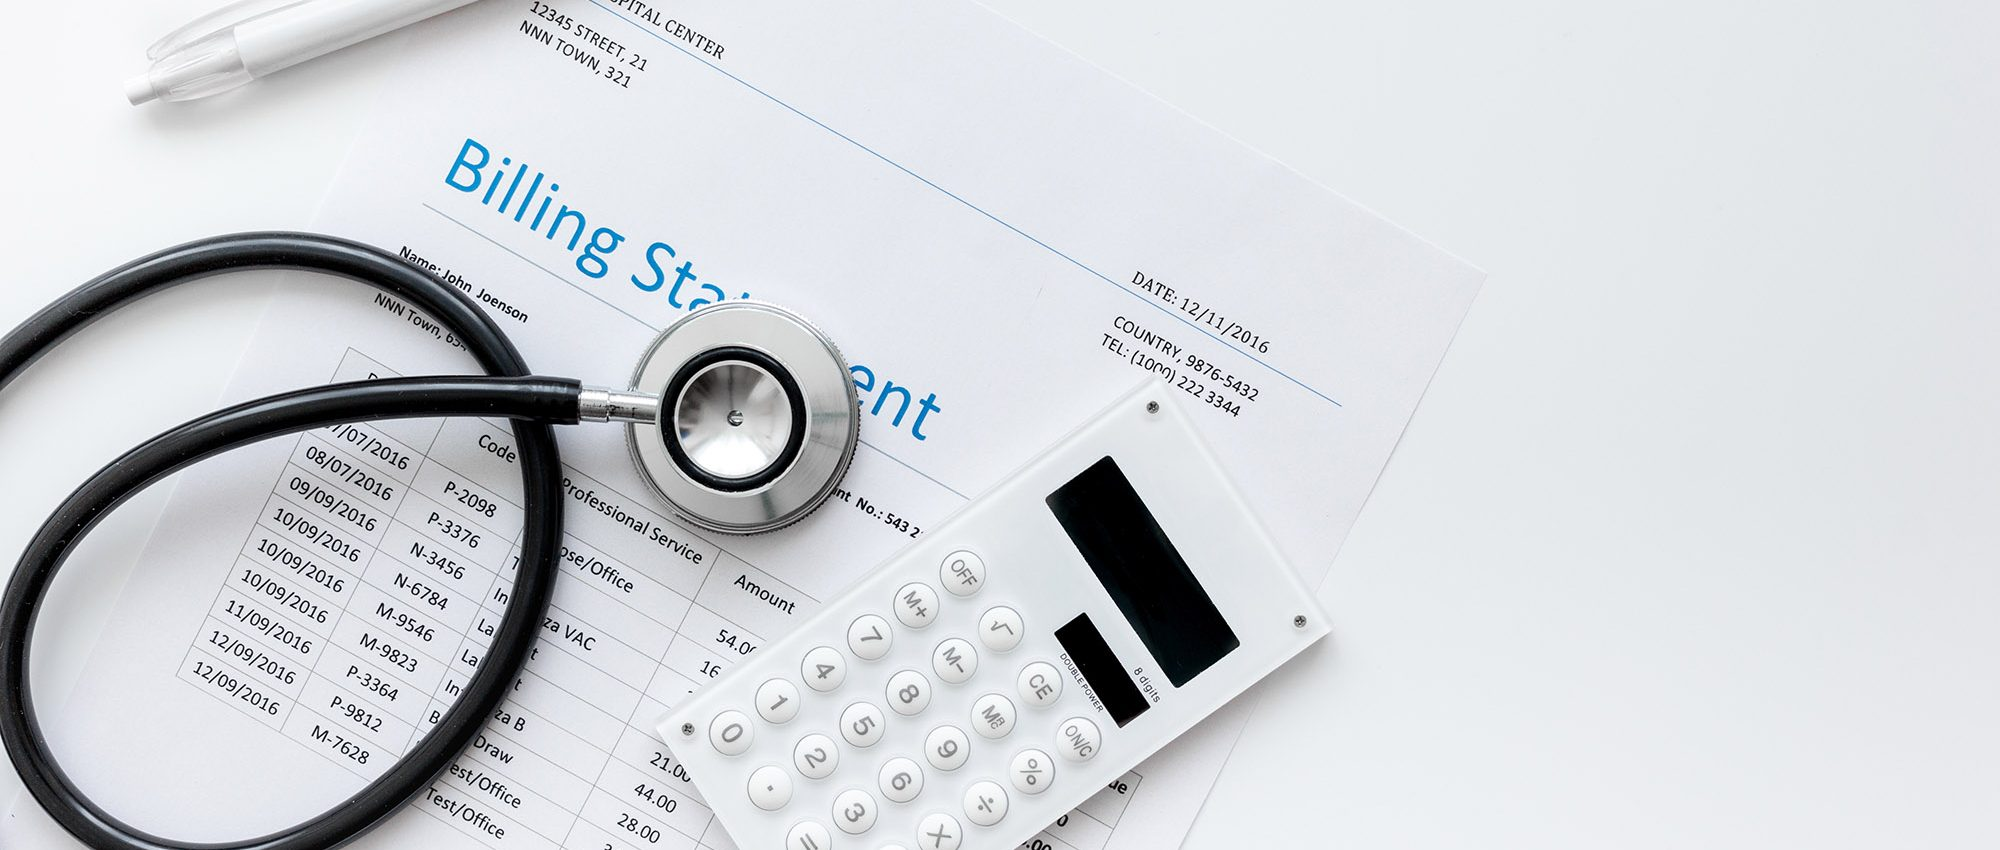 picture of a medical bill and stethoscope